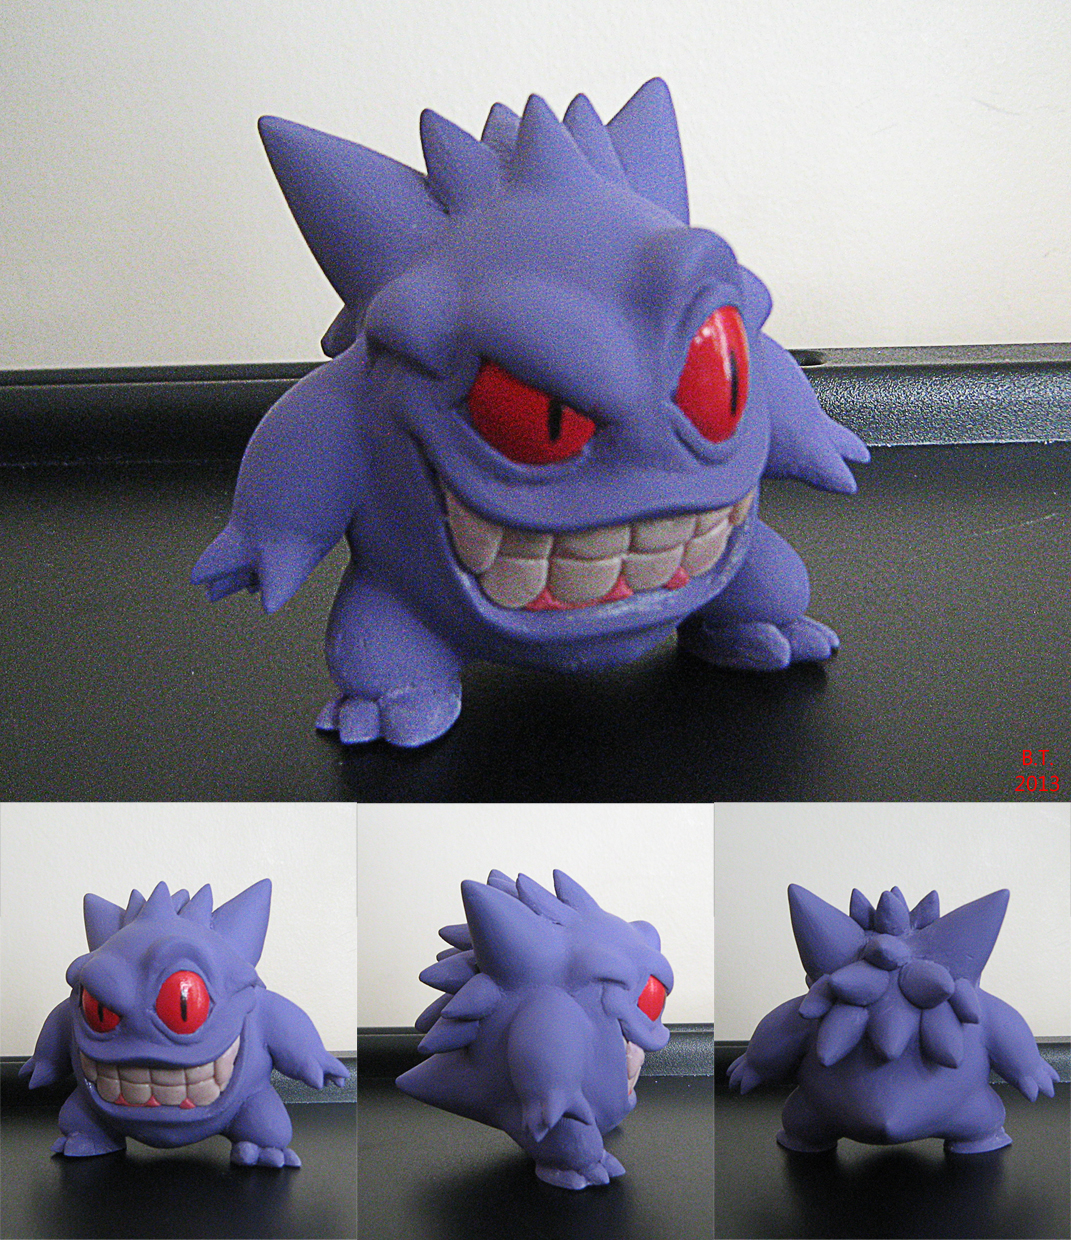 Stylized Gengar Sculpture